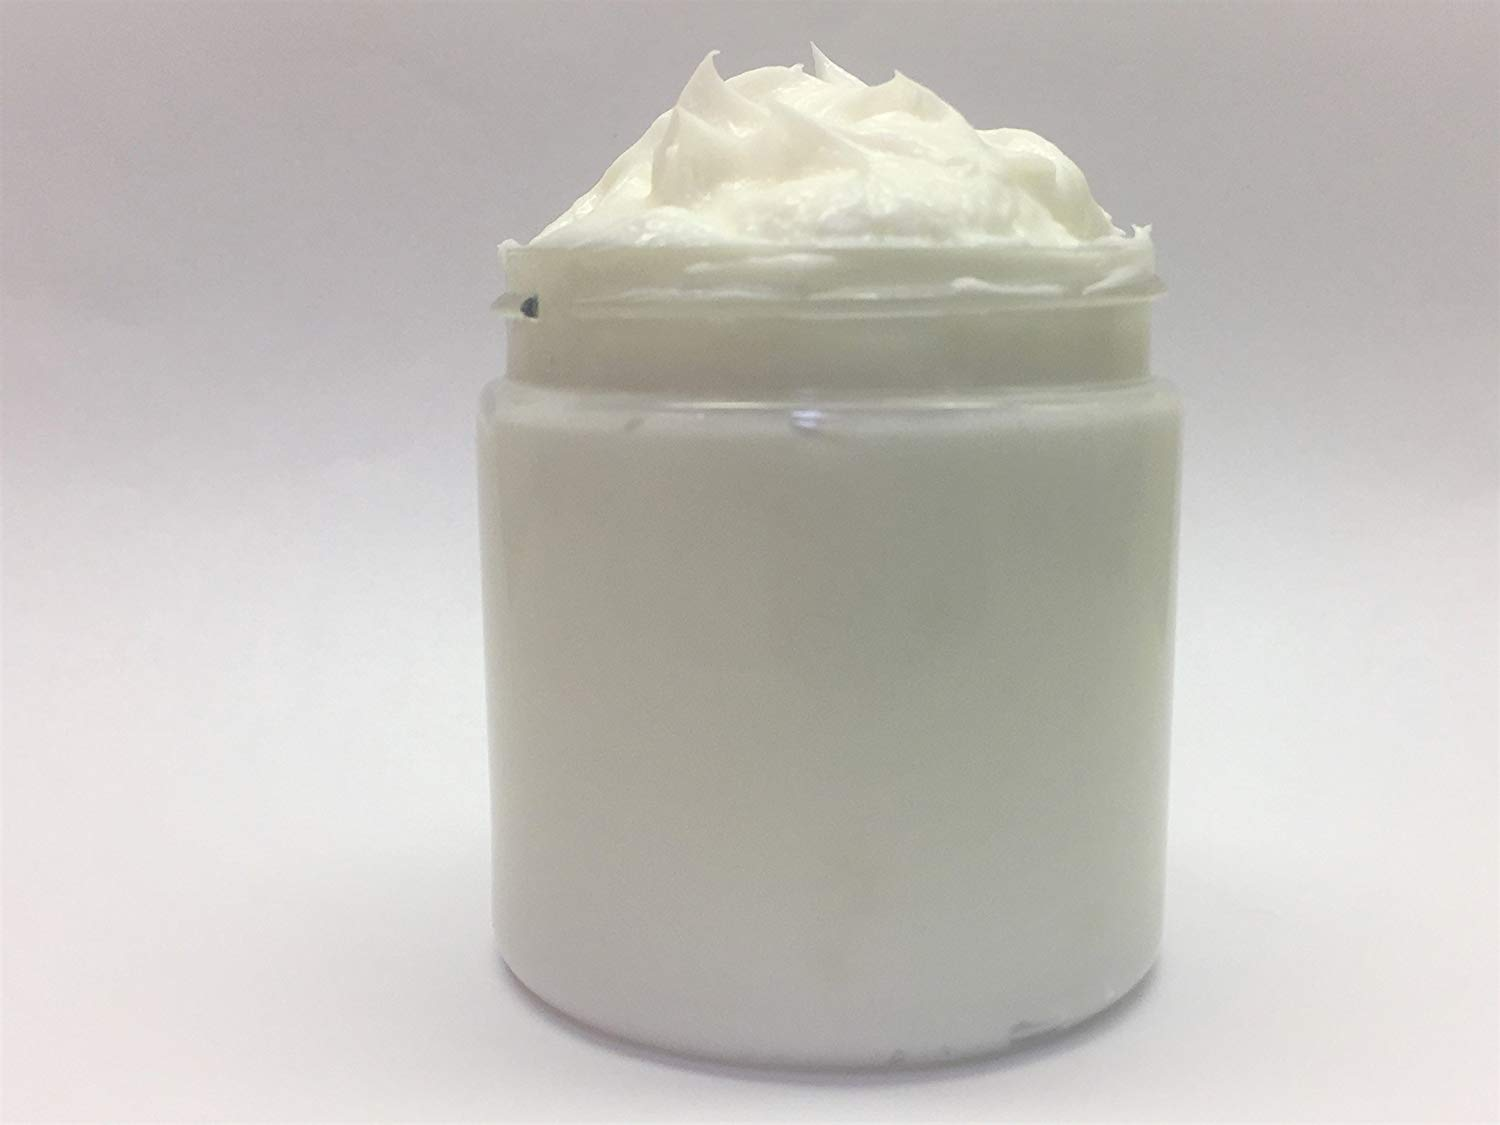 Black Currant Vanilla Type Whipped Body Butter, Goat Milk, Shea and Cocoa Butter With Vitamin C, Handmade